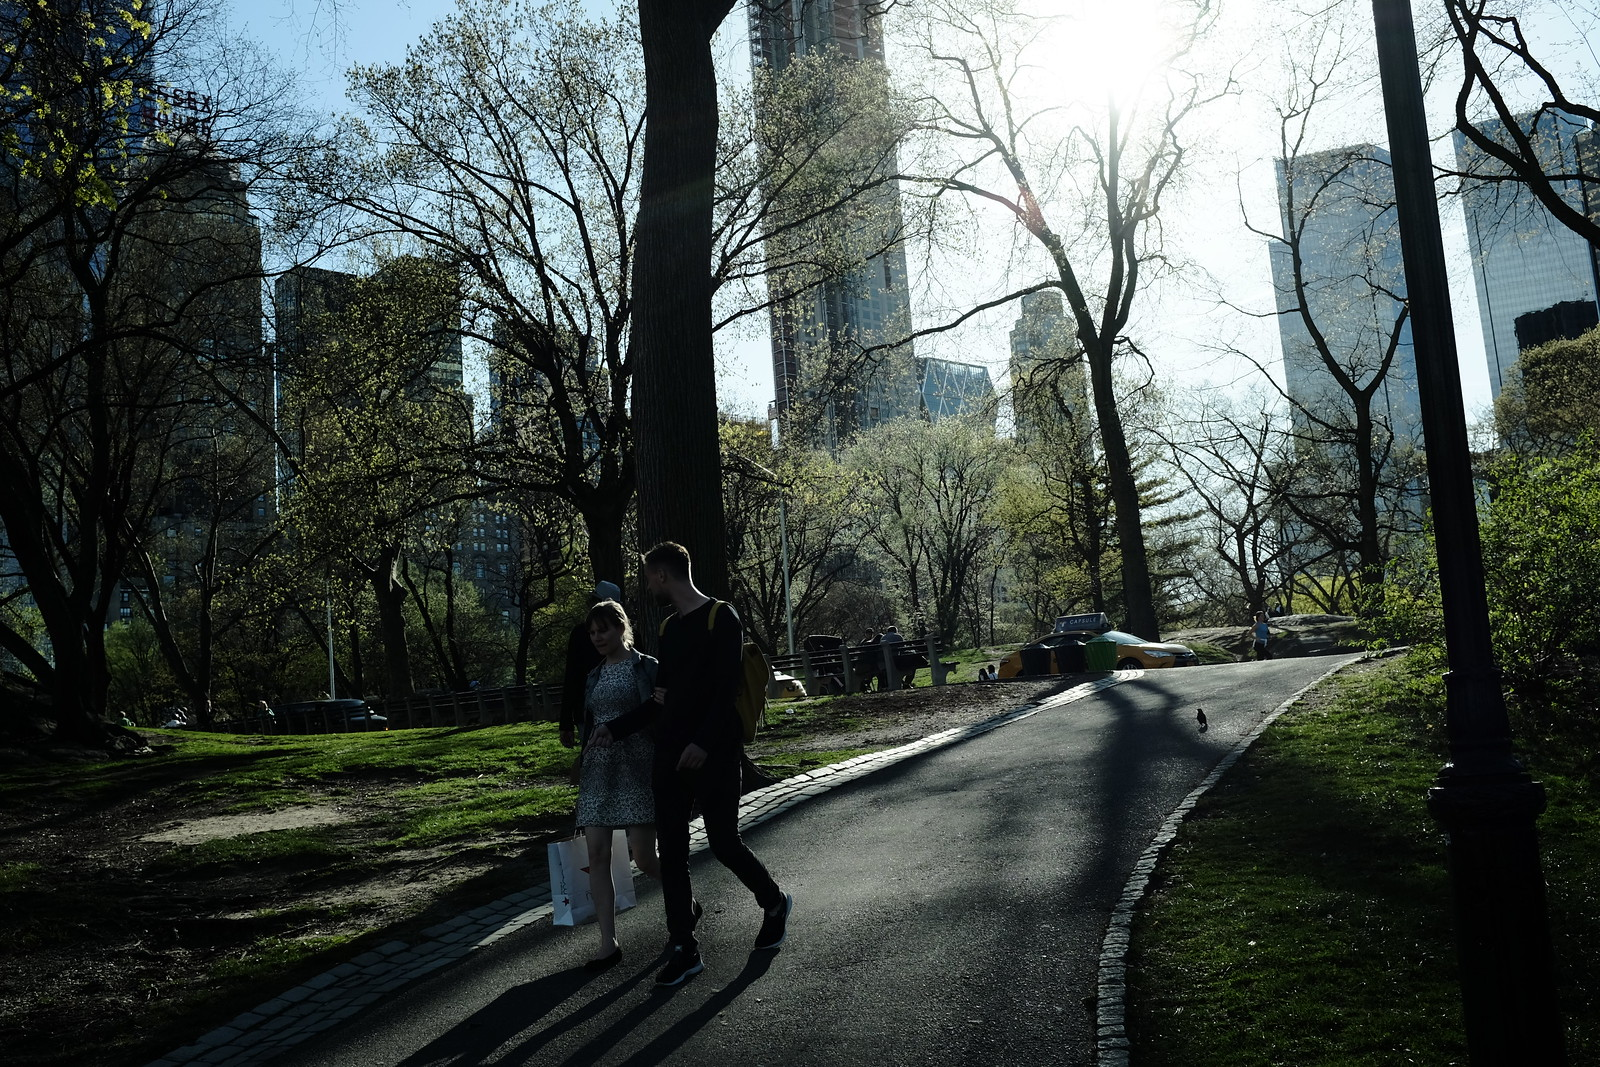 The New York Photo by FUJIFILM X100S.